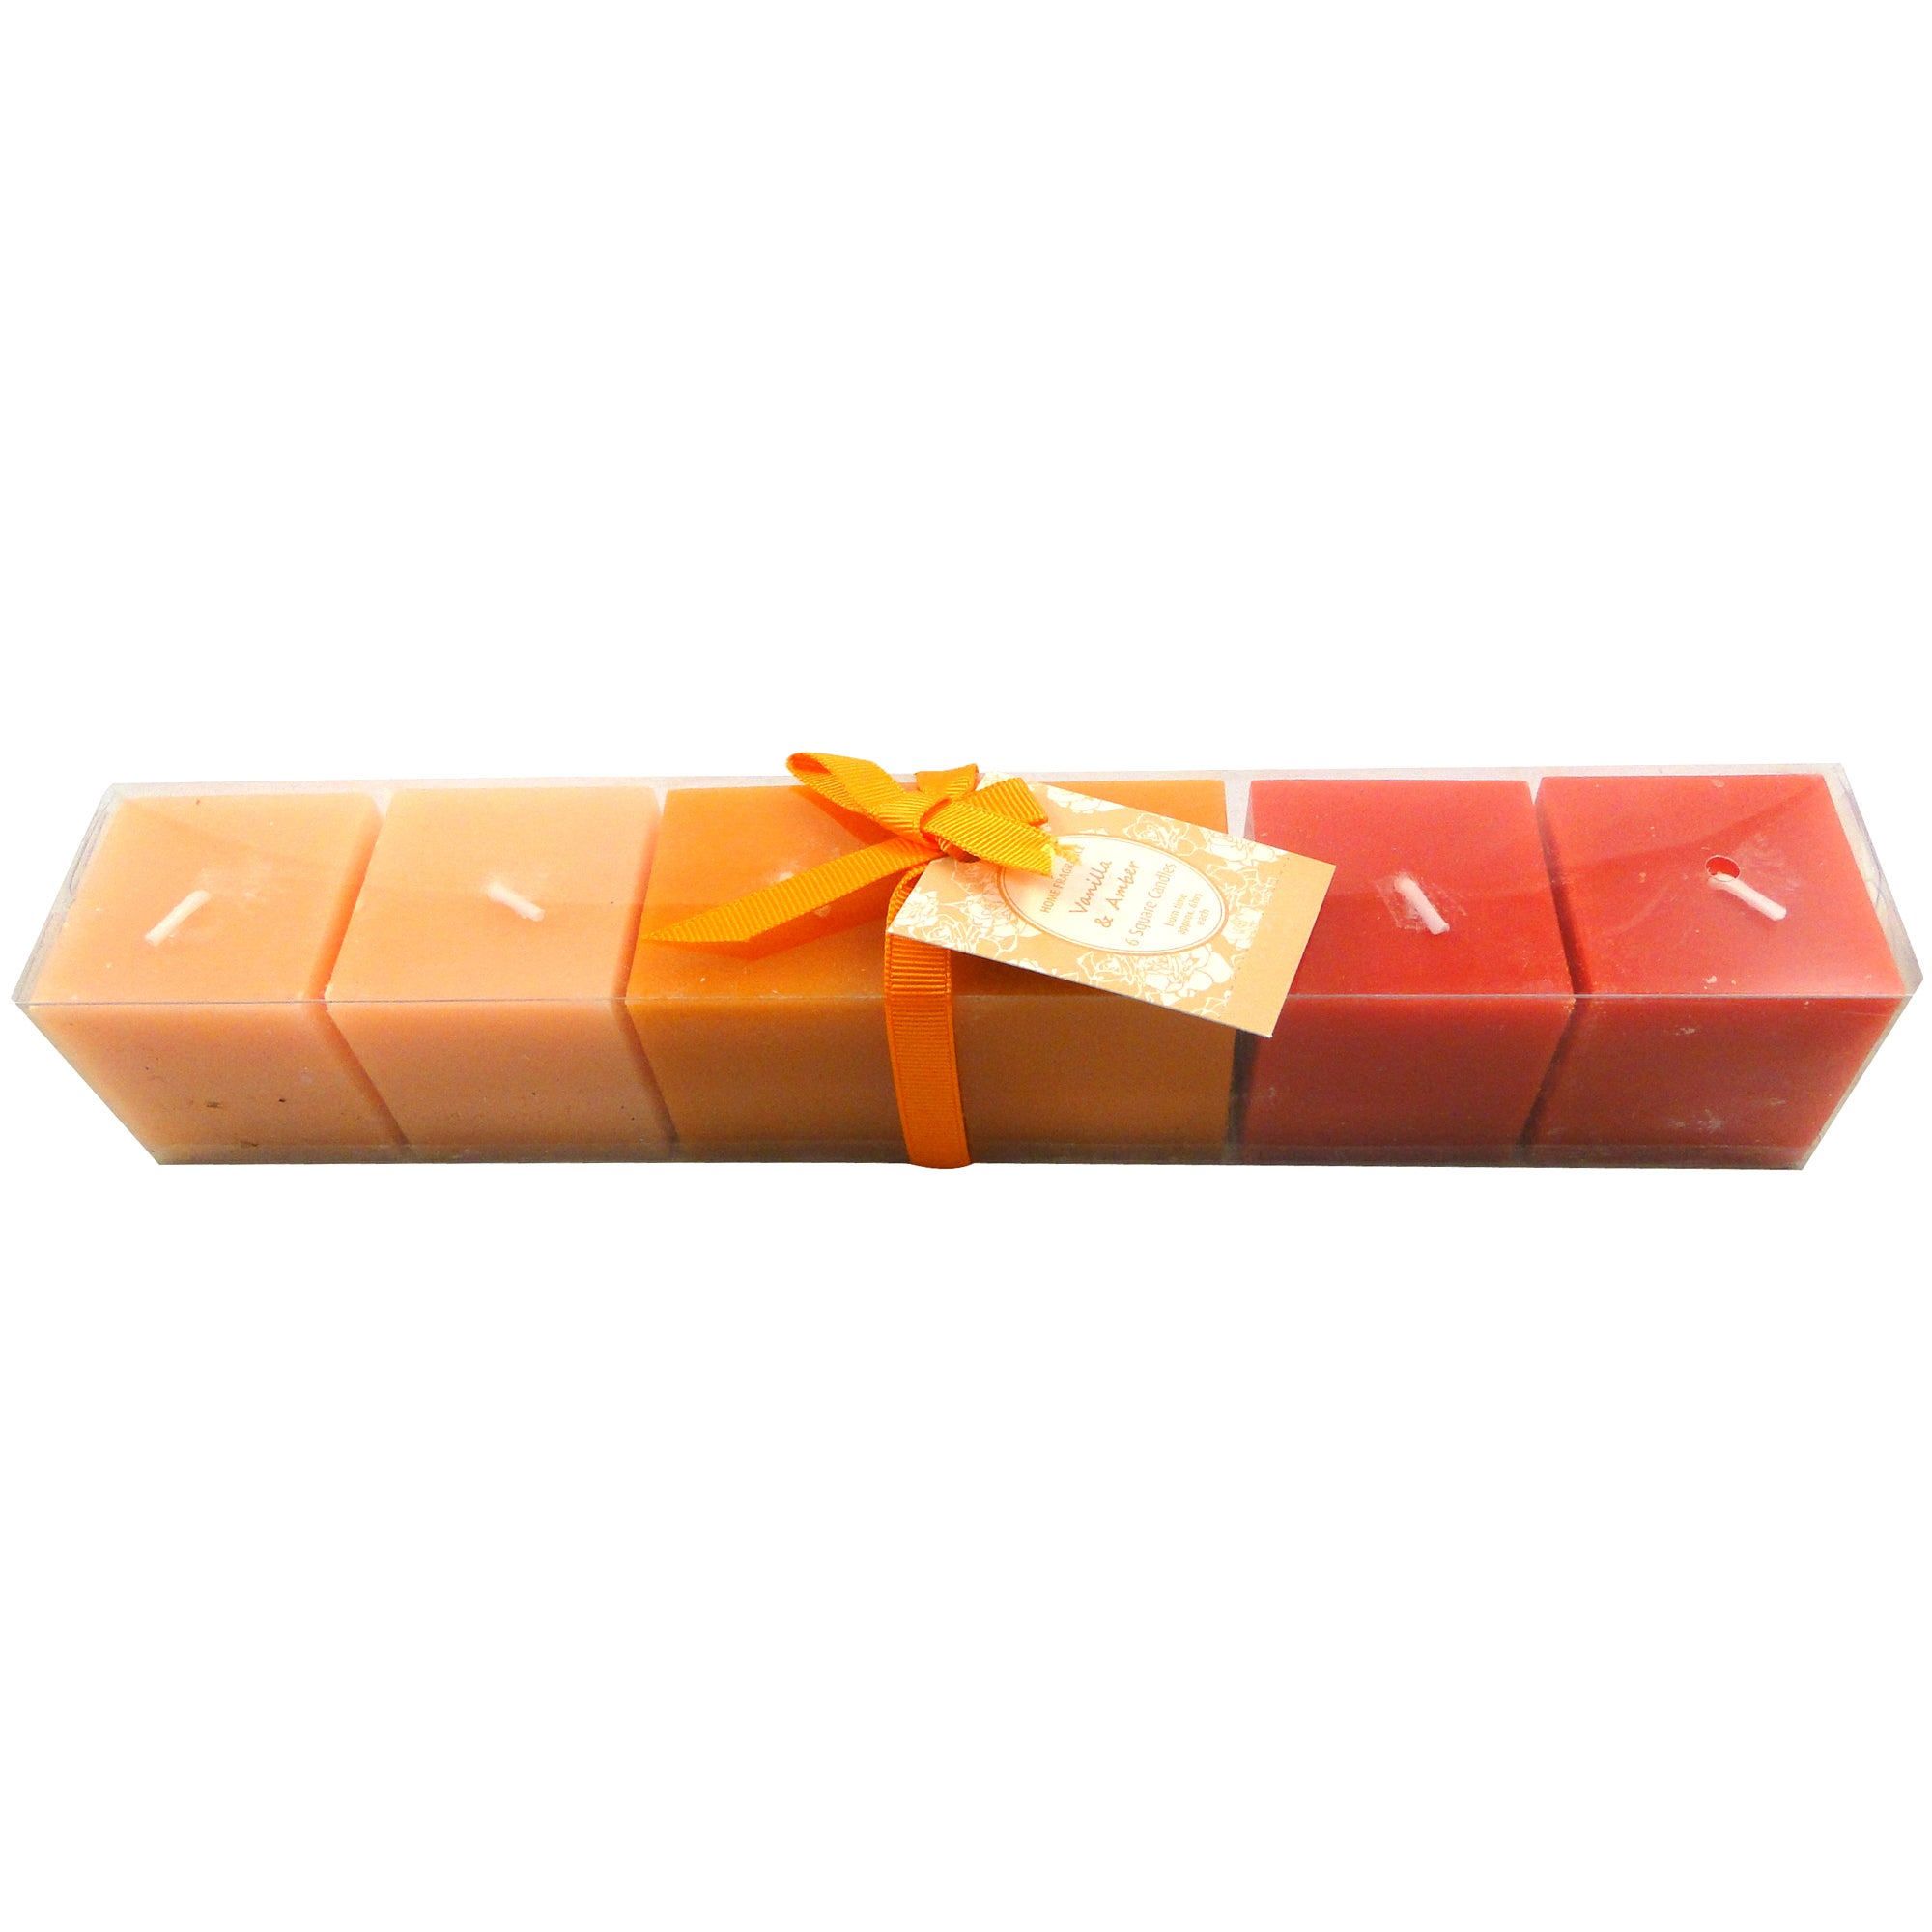 Home Fragrance Set of 6 Vanilla and Amber Square Candles